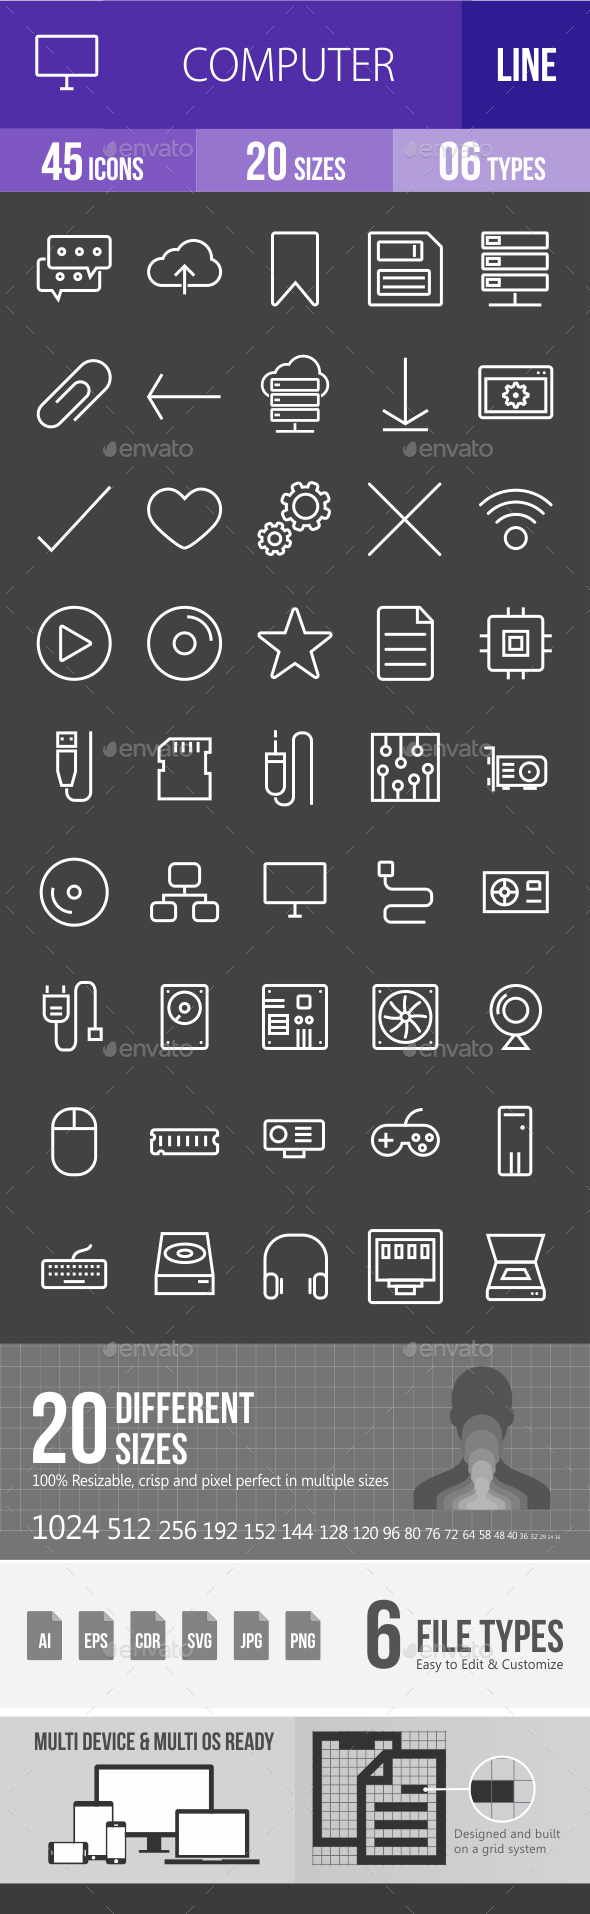 Computer Hardware Line Inverted Icons - Icons